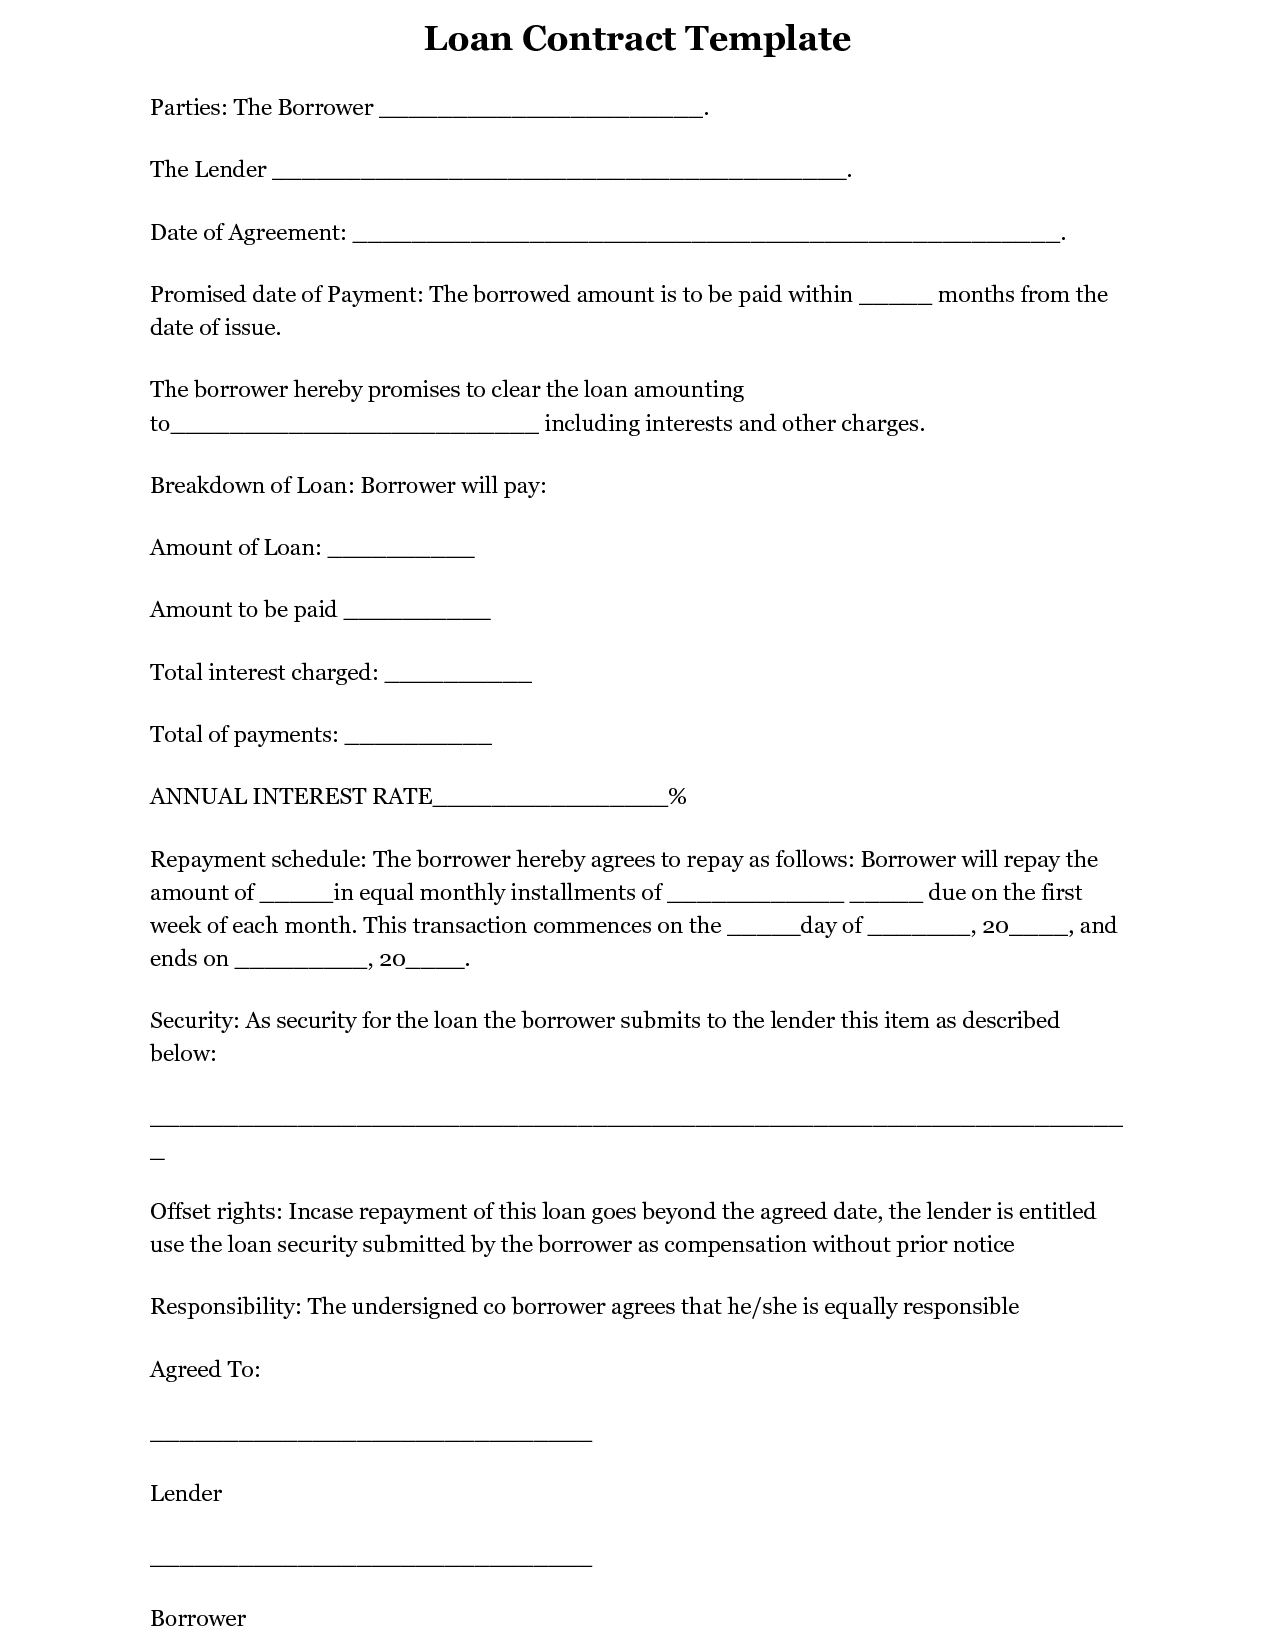 simple interest loan agreement template – Loan Template Agreement